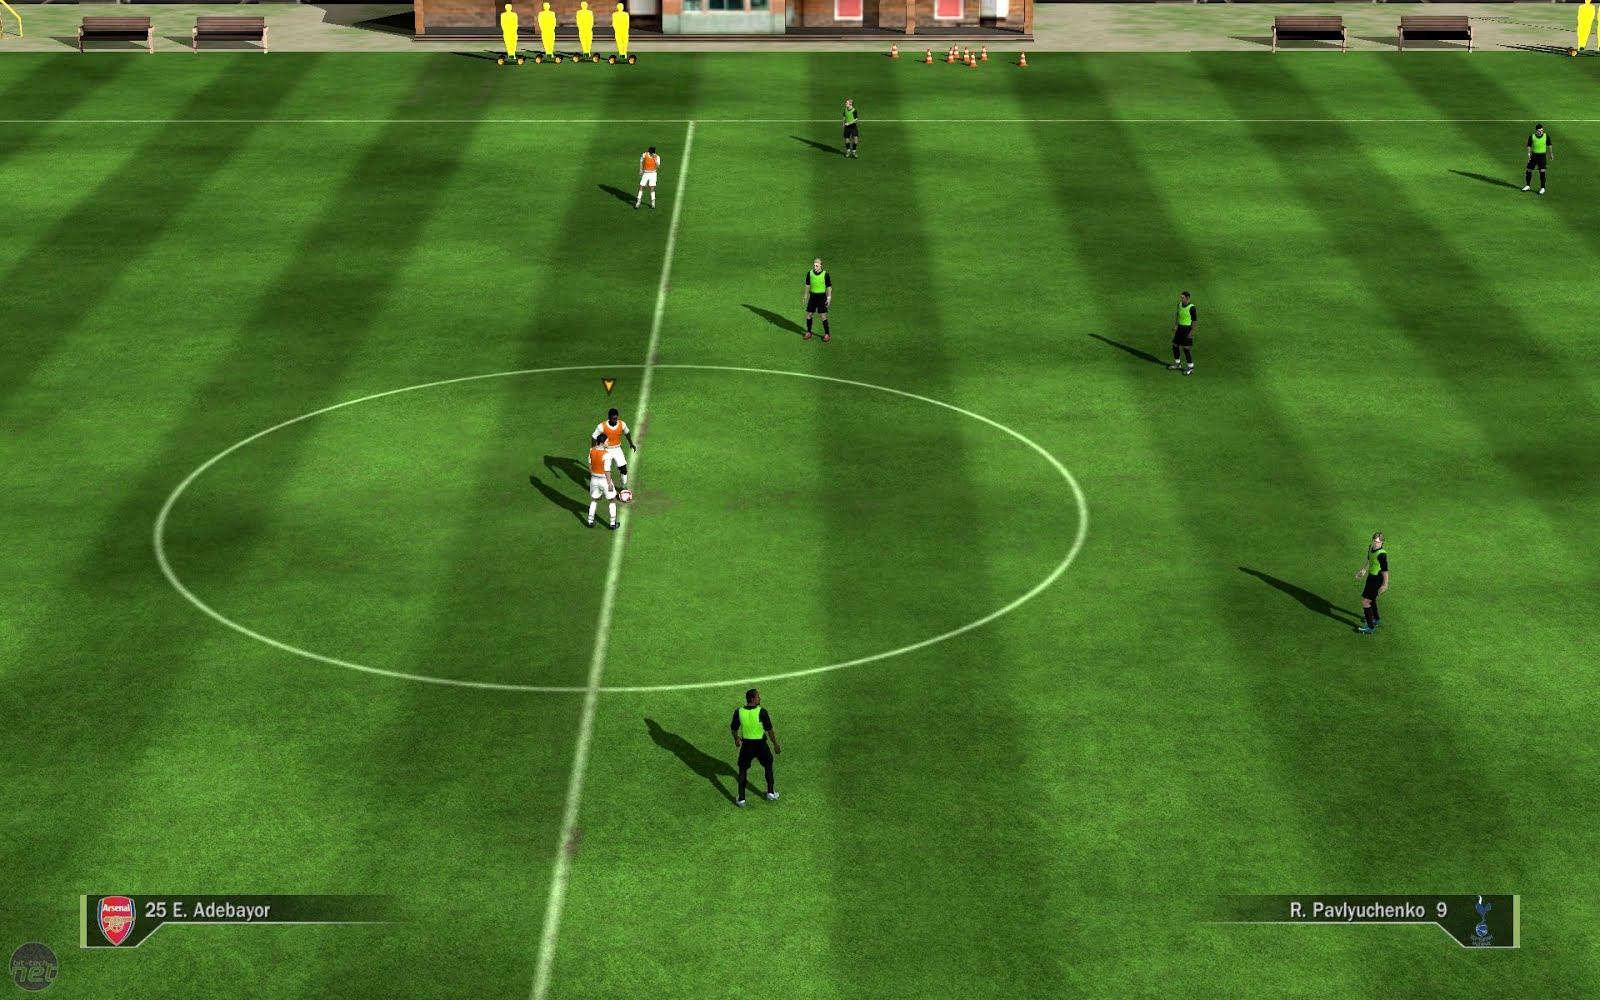 fifa 09 free download full version for pc highly compressed